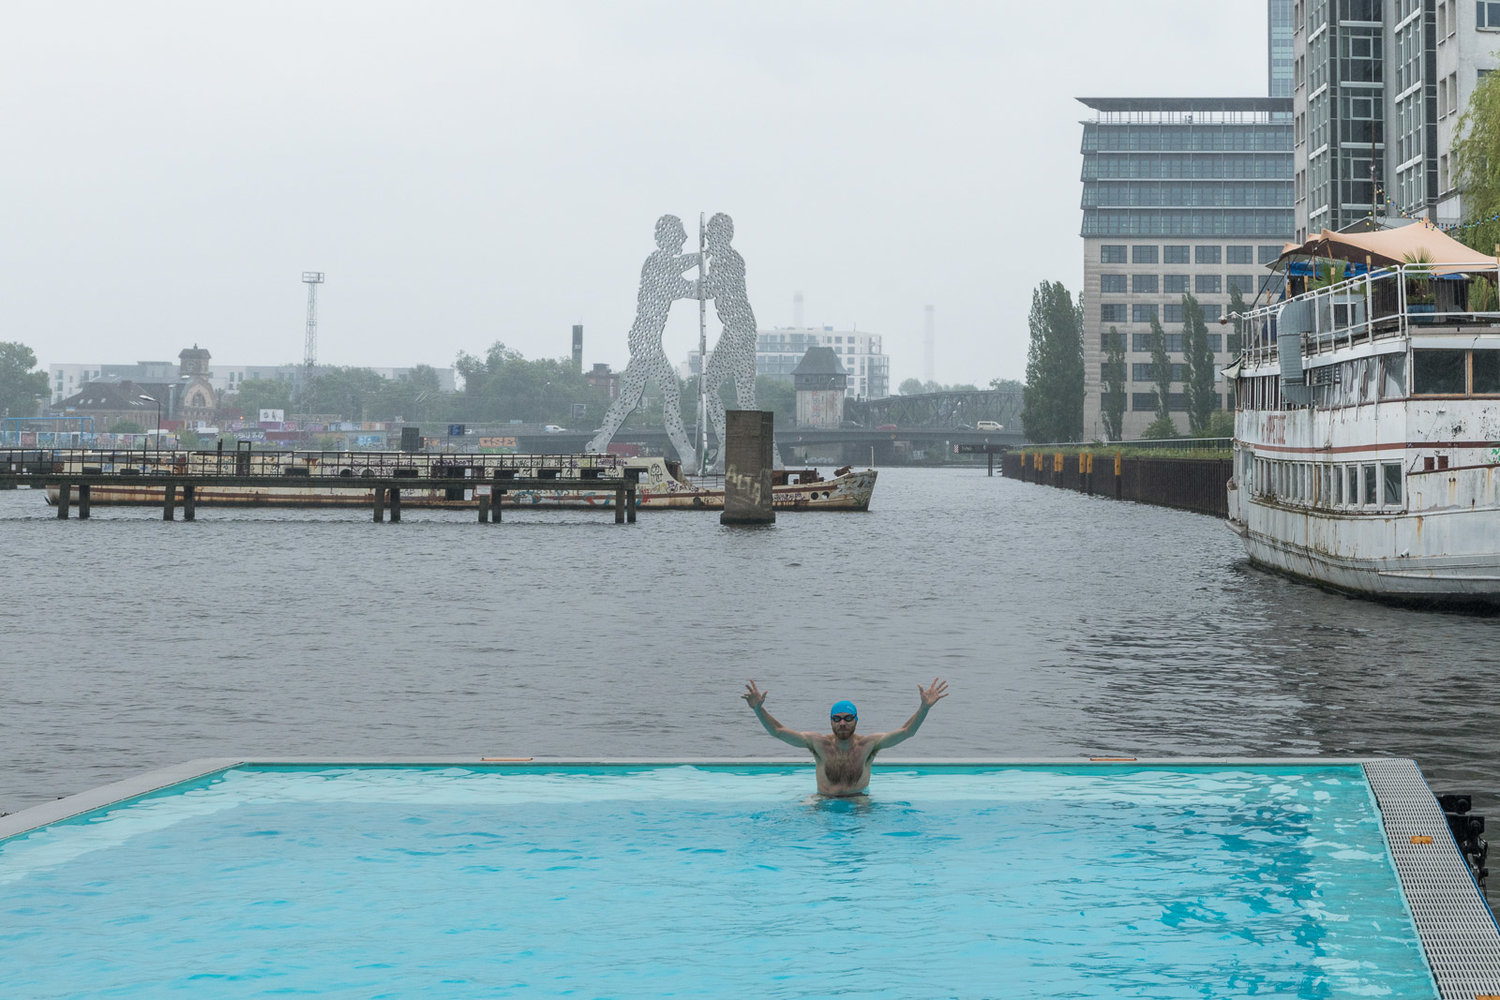 COOL IN BERLIN — POOL IS COOL